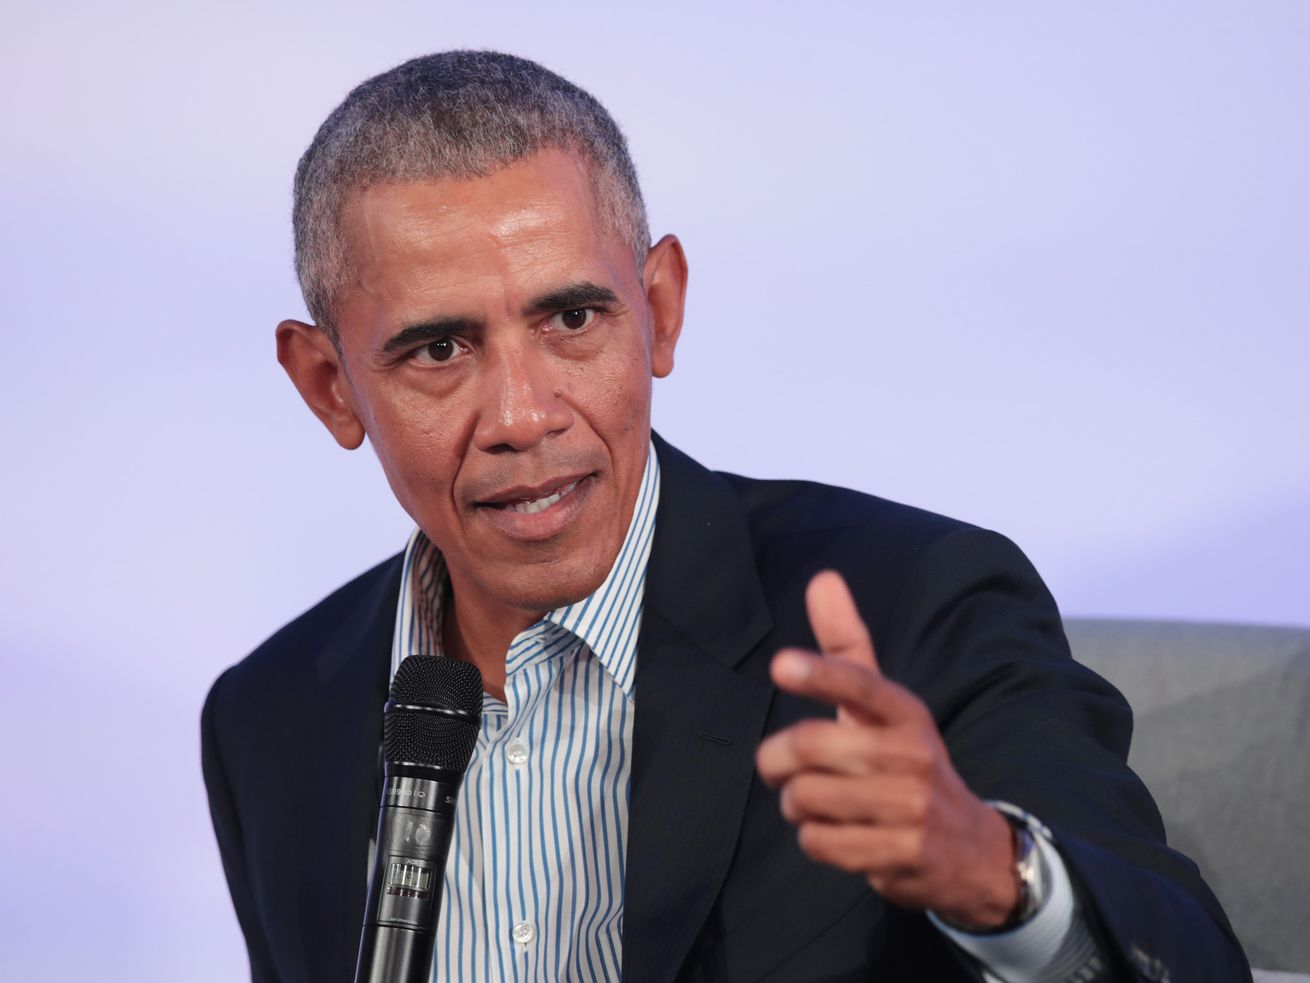 Obama, in a dark suit and blue and white button down shirt, his collar open, gestures as he speaks into a microphone.